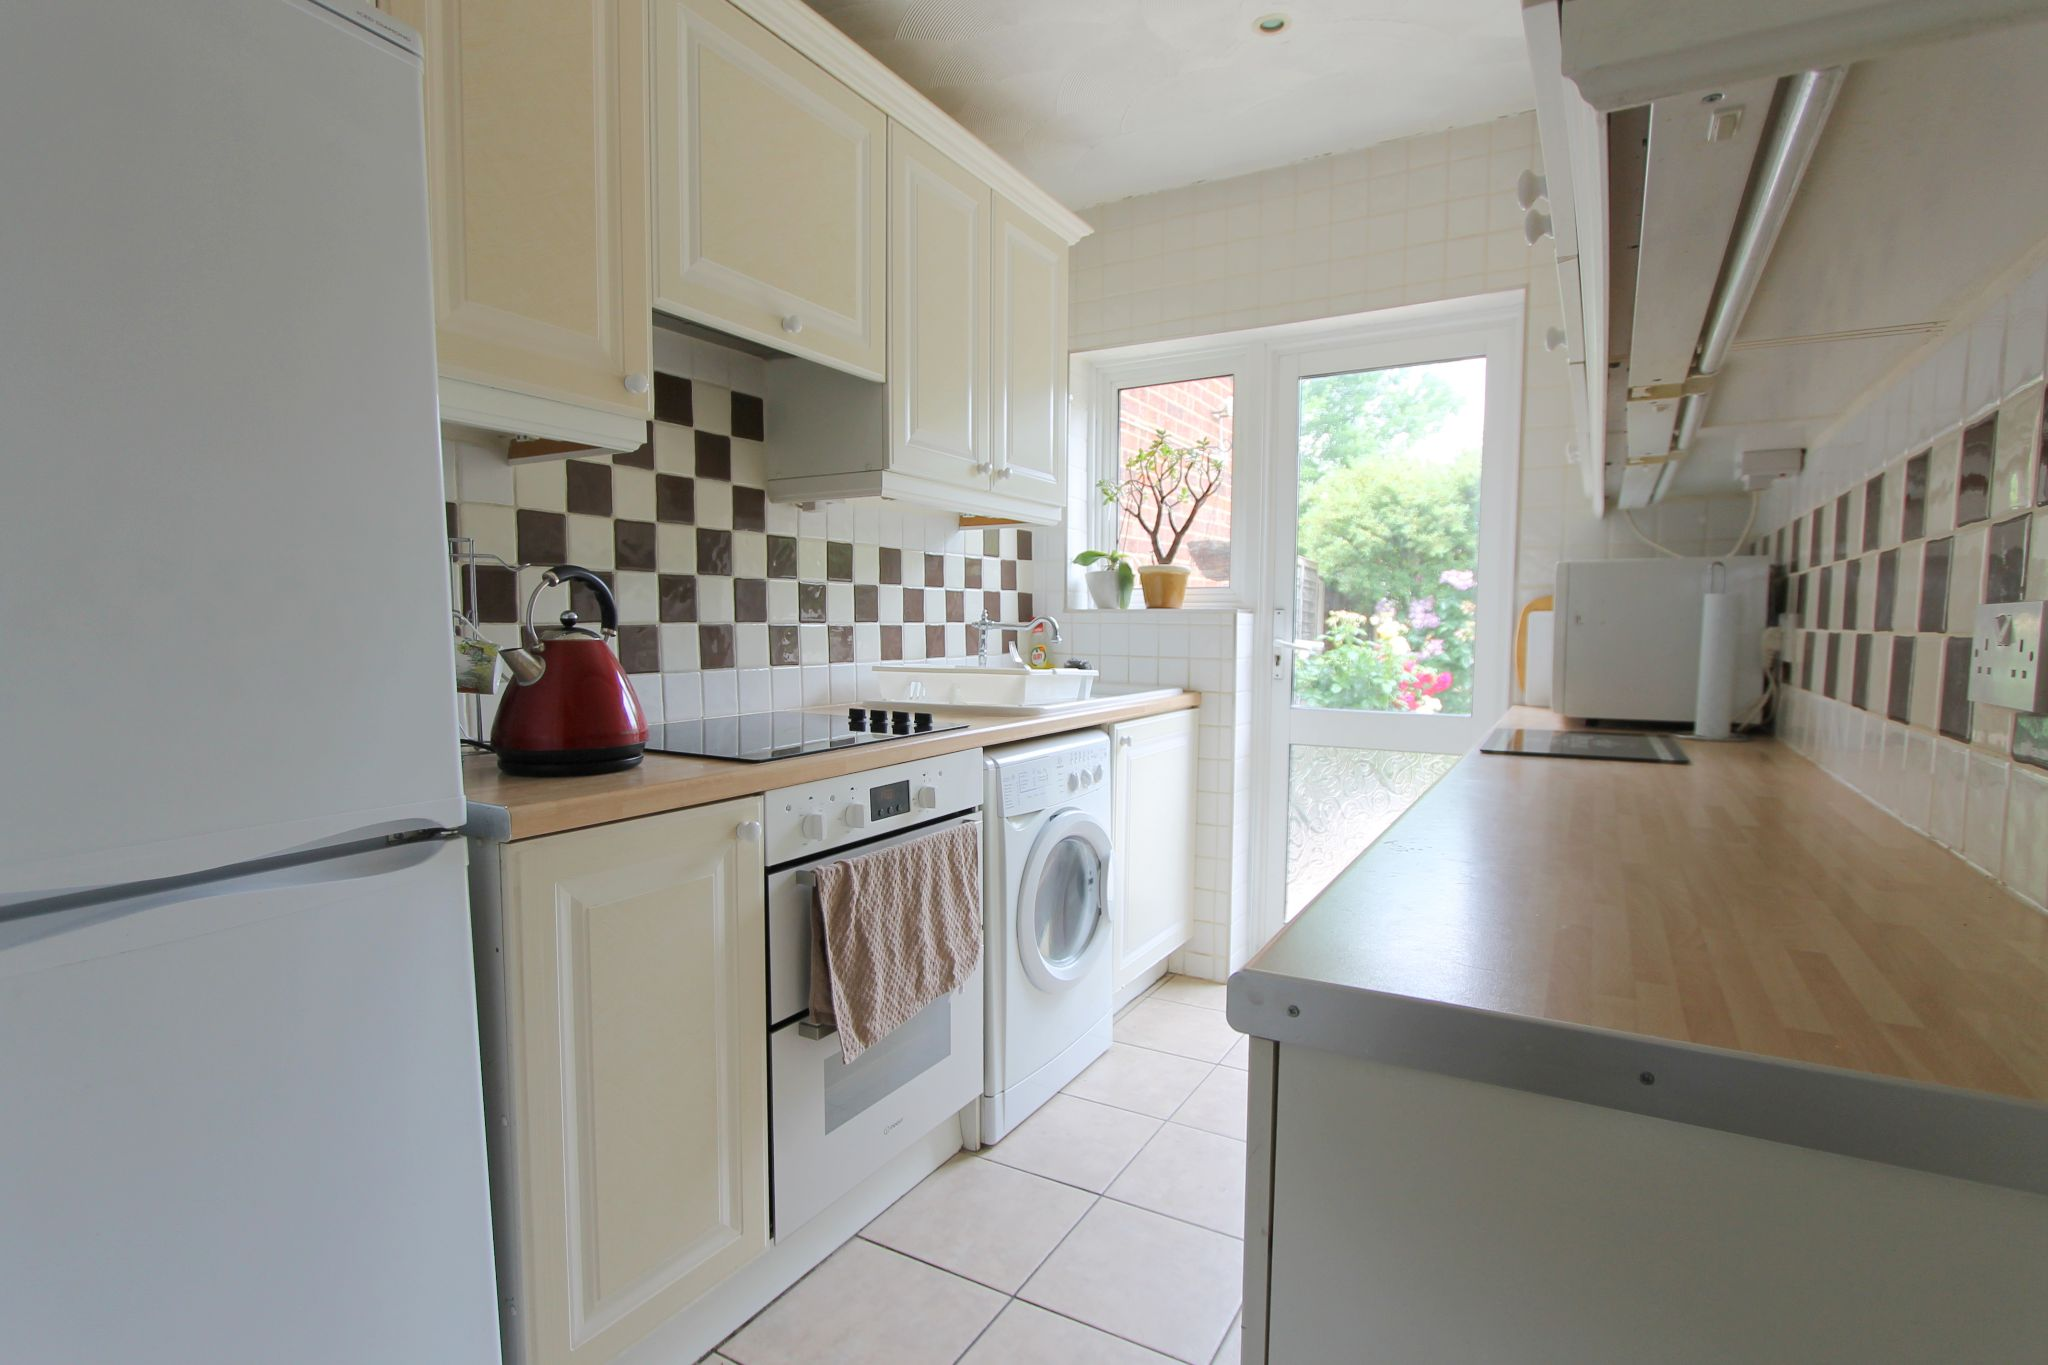 3 bedroom mid terraced house To Let in Sutton - Photograph 5.